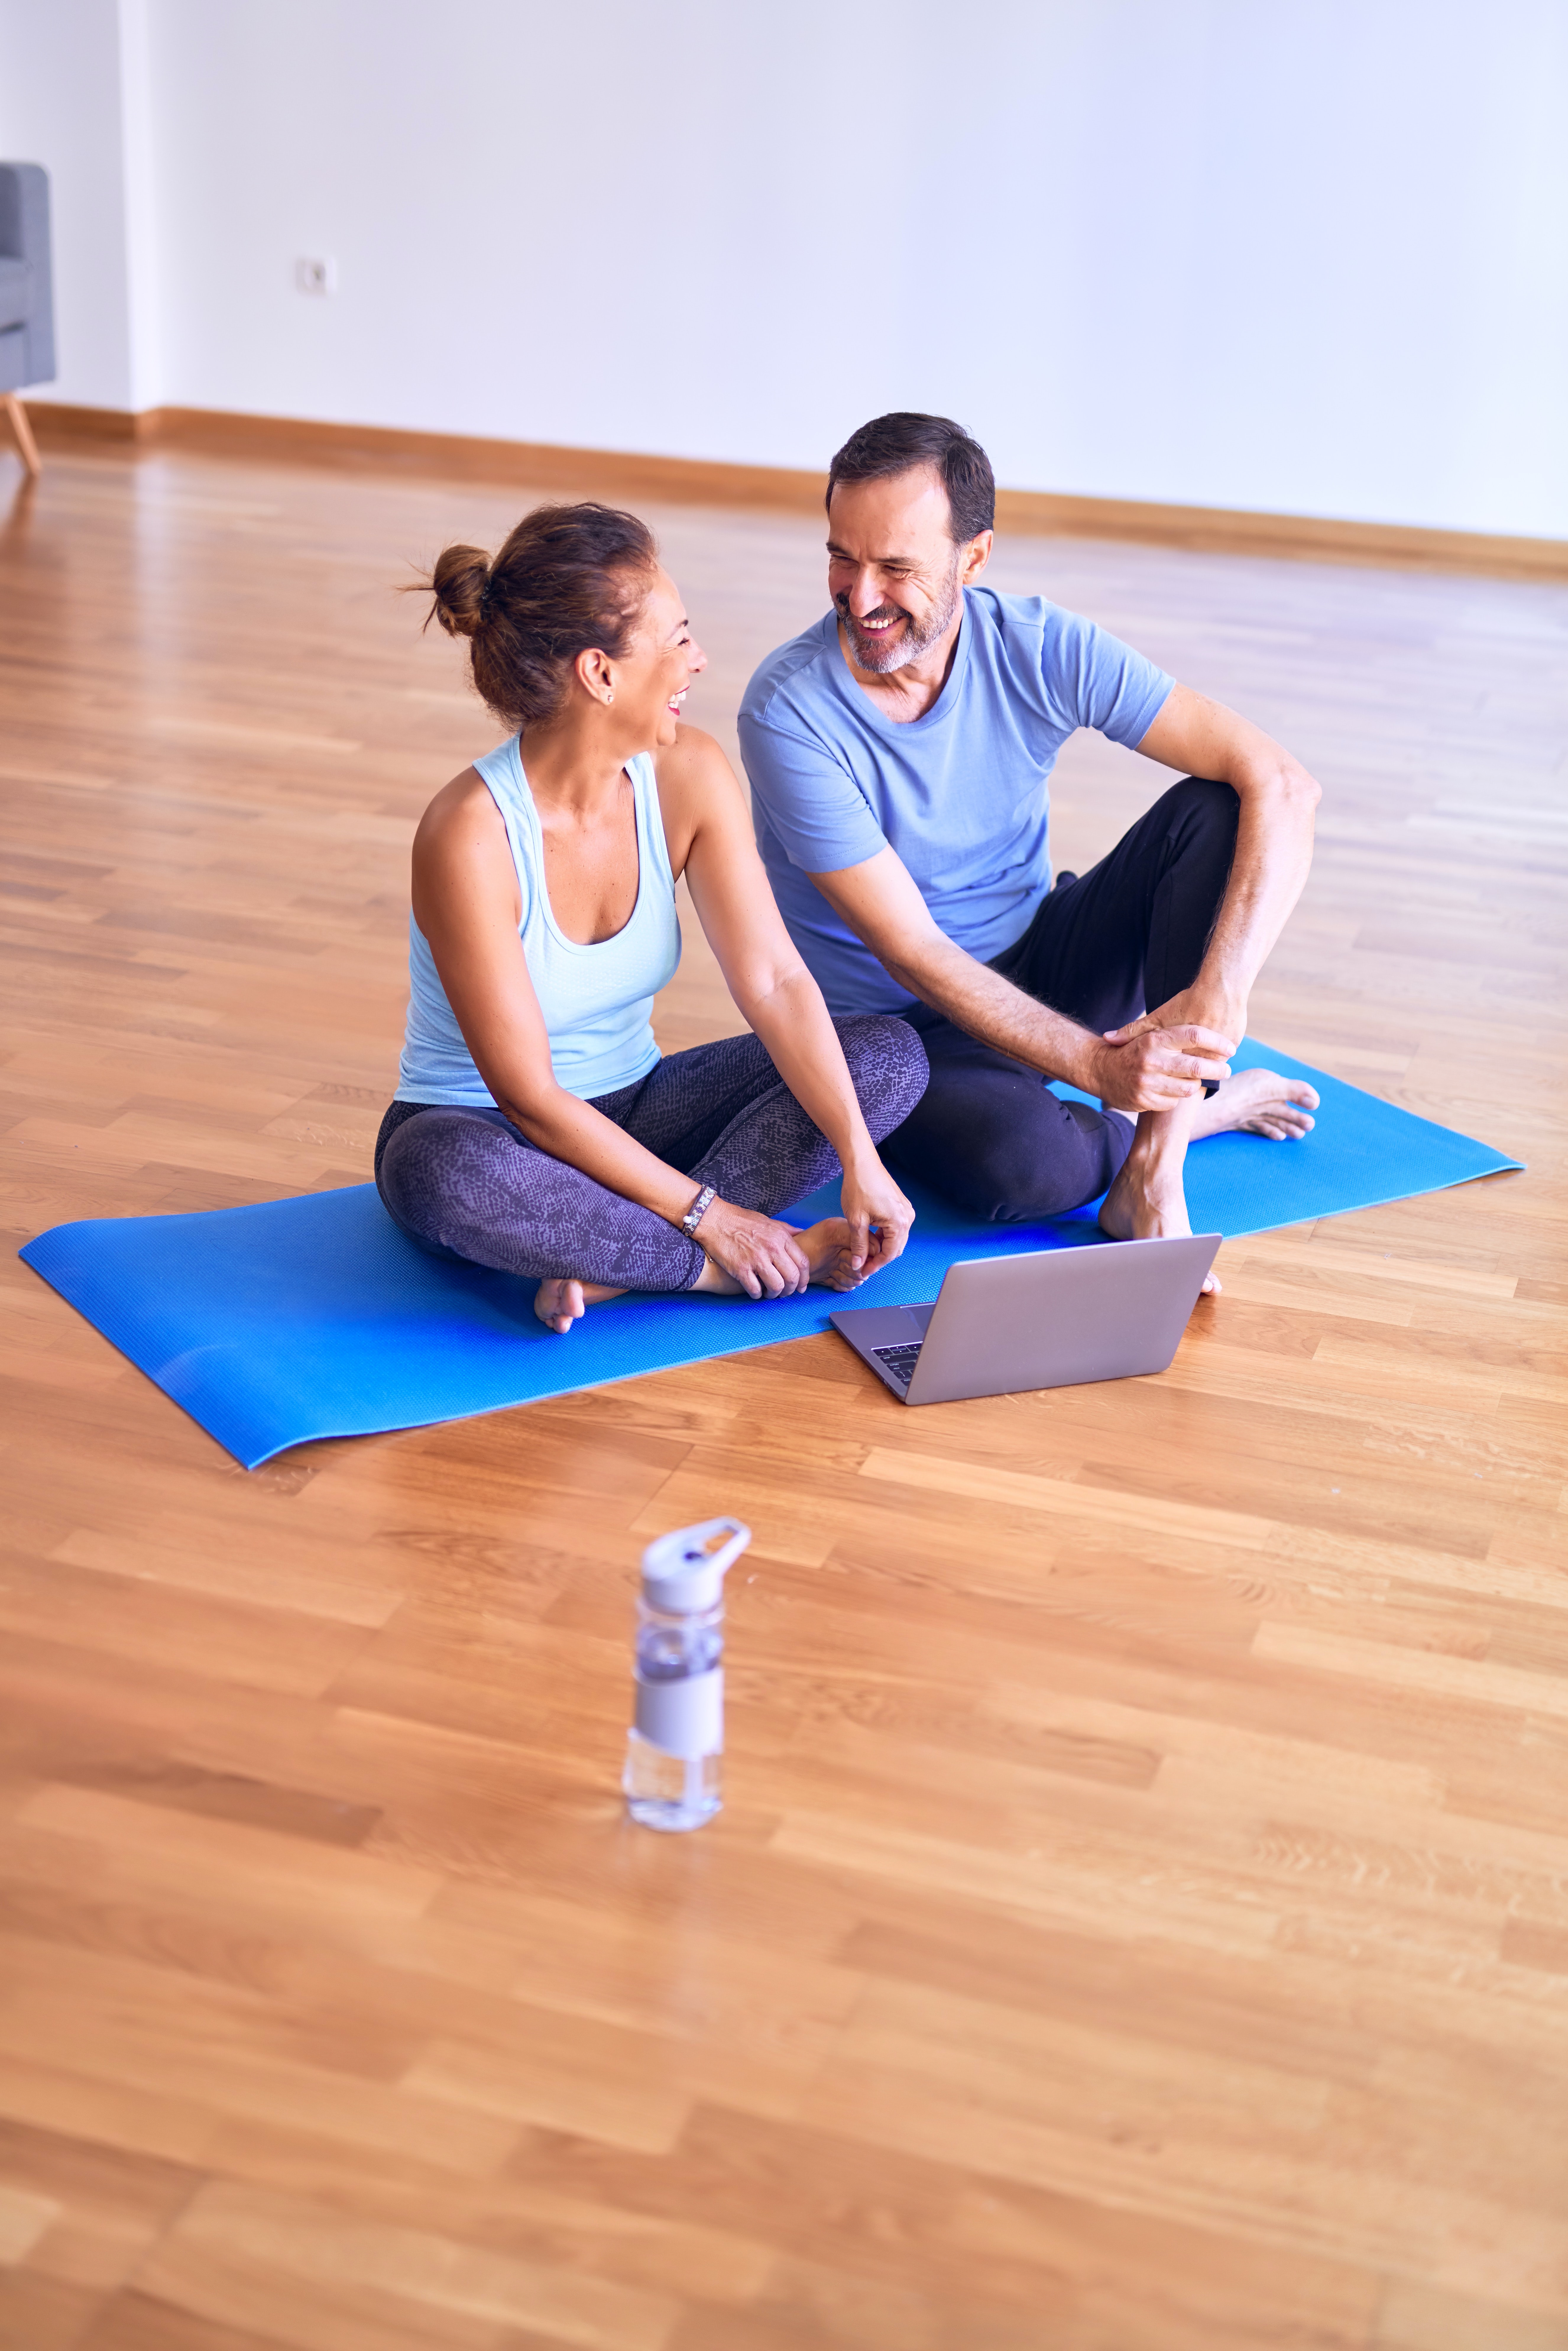 A man and a woman sit on their yoga mat as they get ready to complete an online fitness workout class.